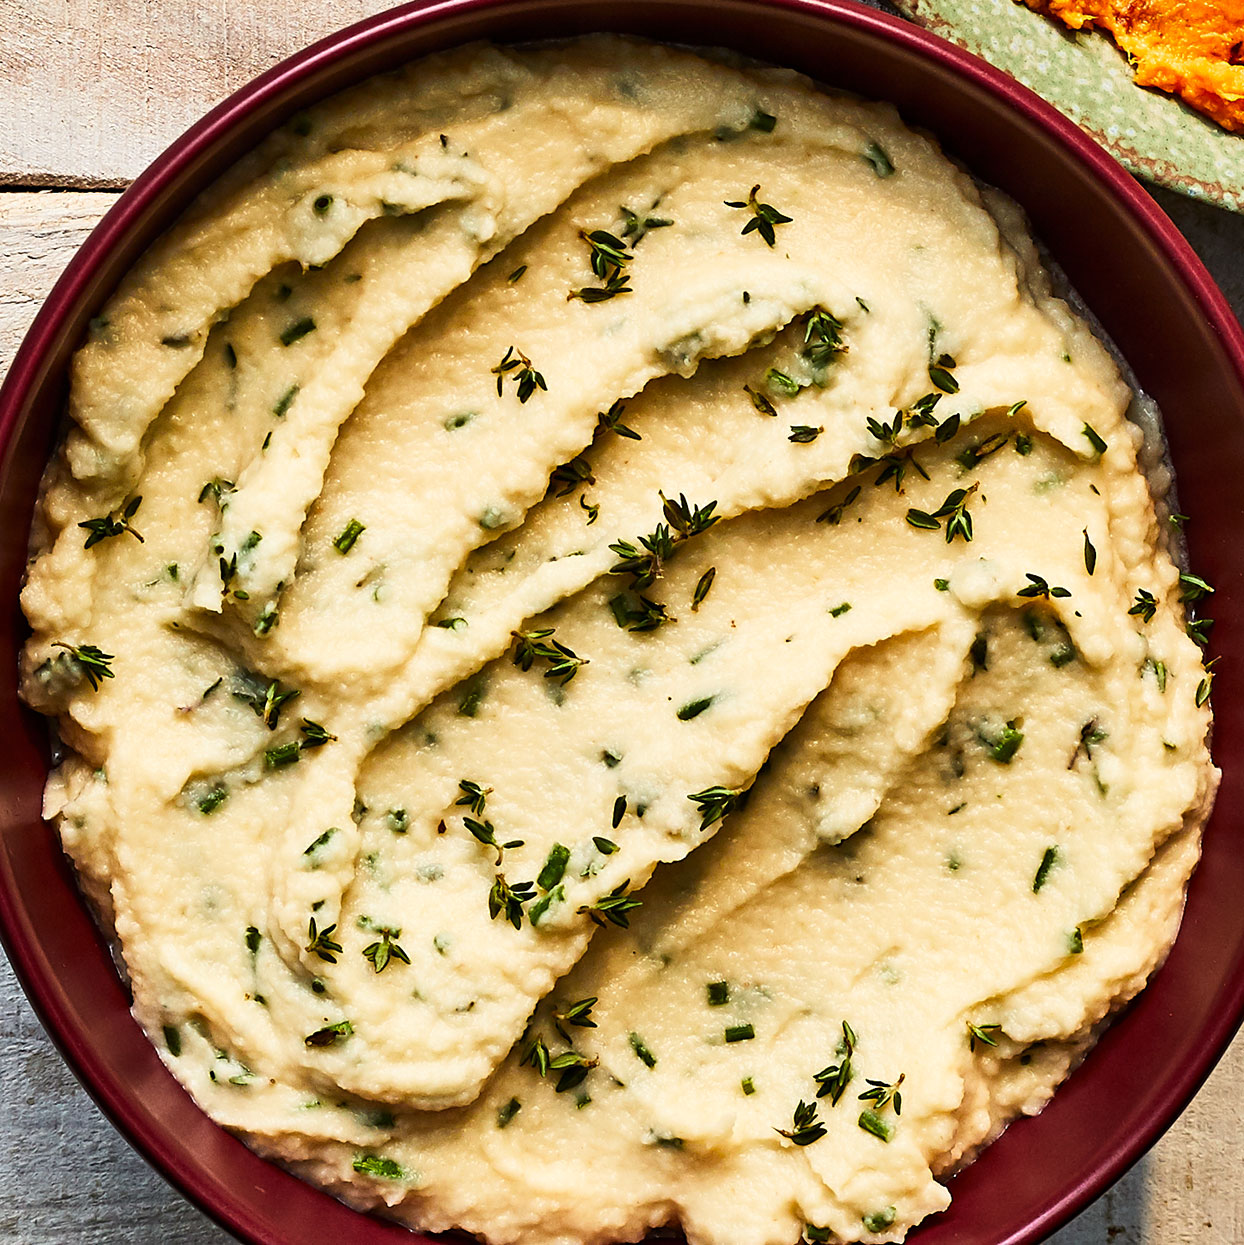 Celeriac is a delicious low-carb alternative to mashed potatoes. Pureeing the steamed celeriac in a food processor ensures a smooth, light and fluffy texture.